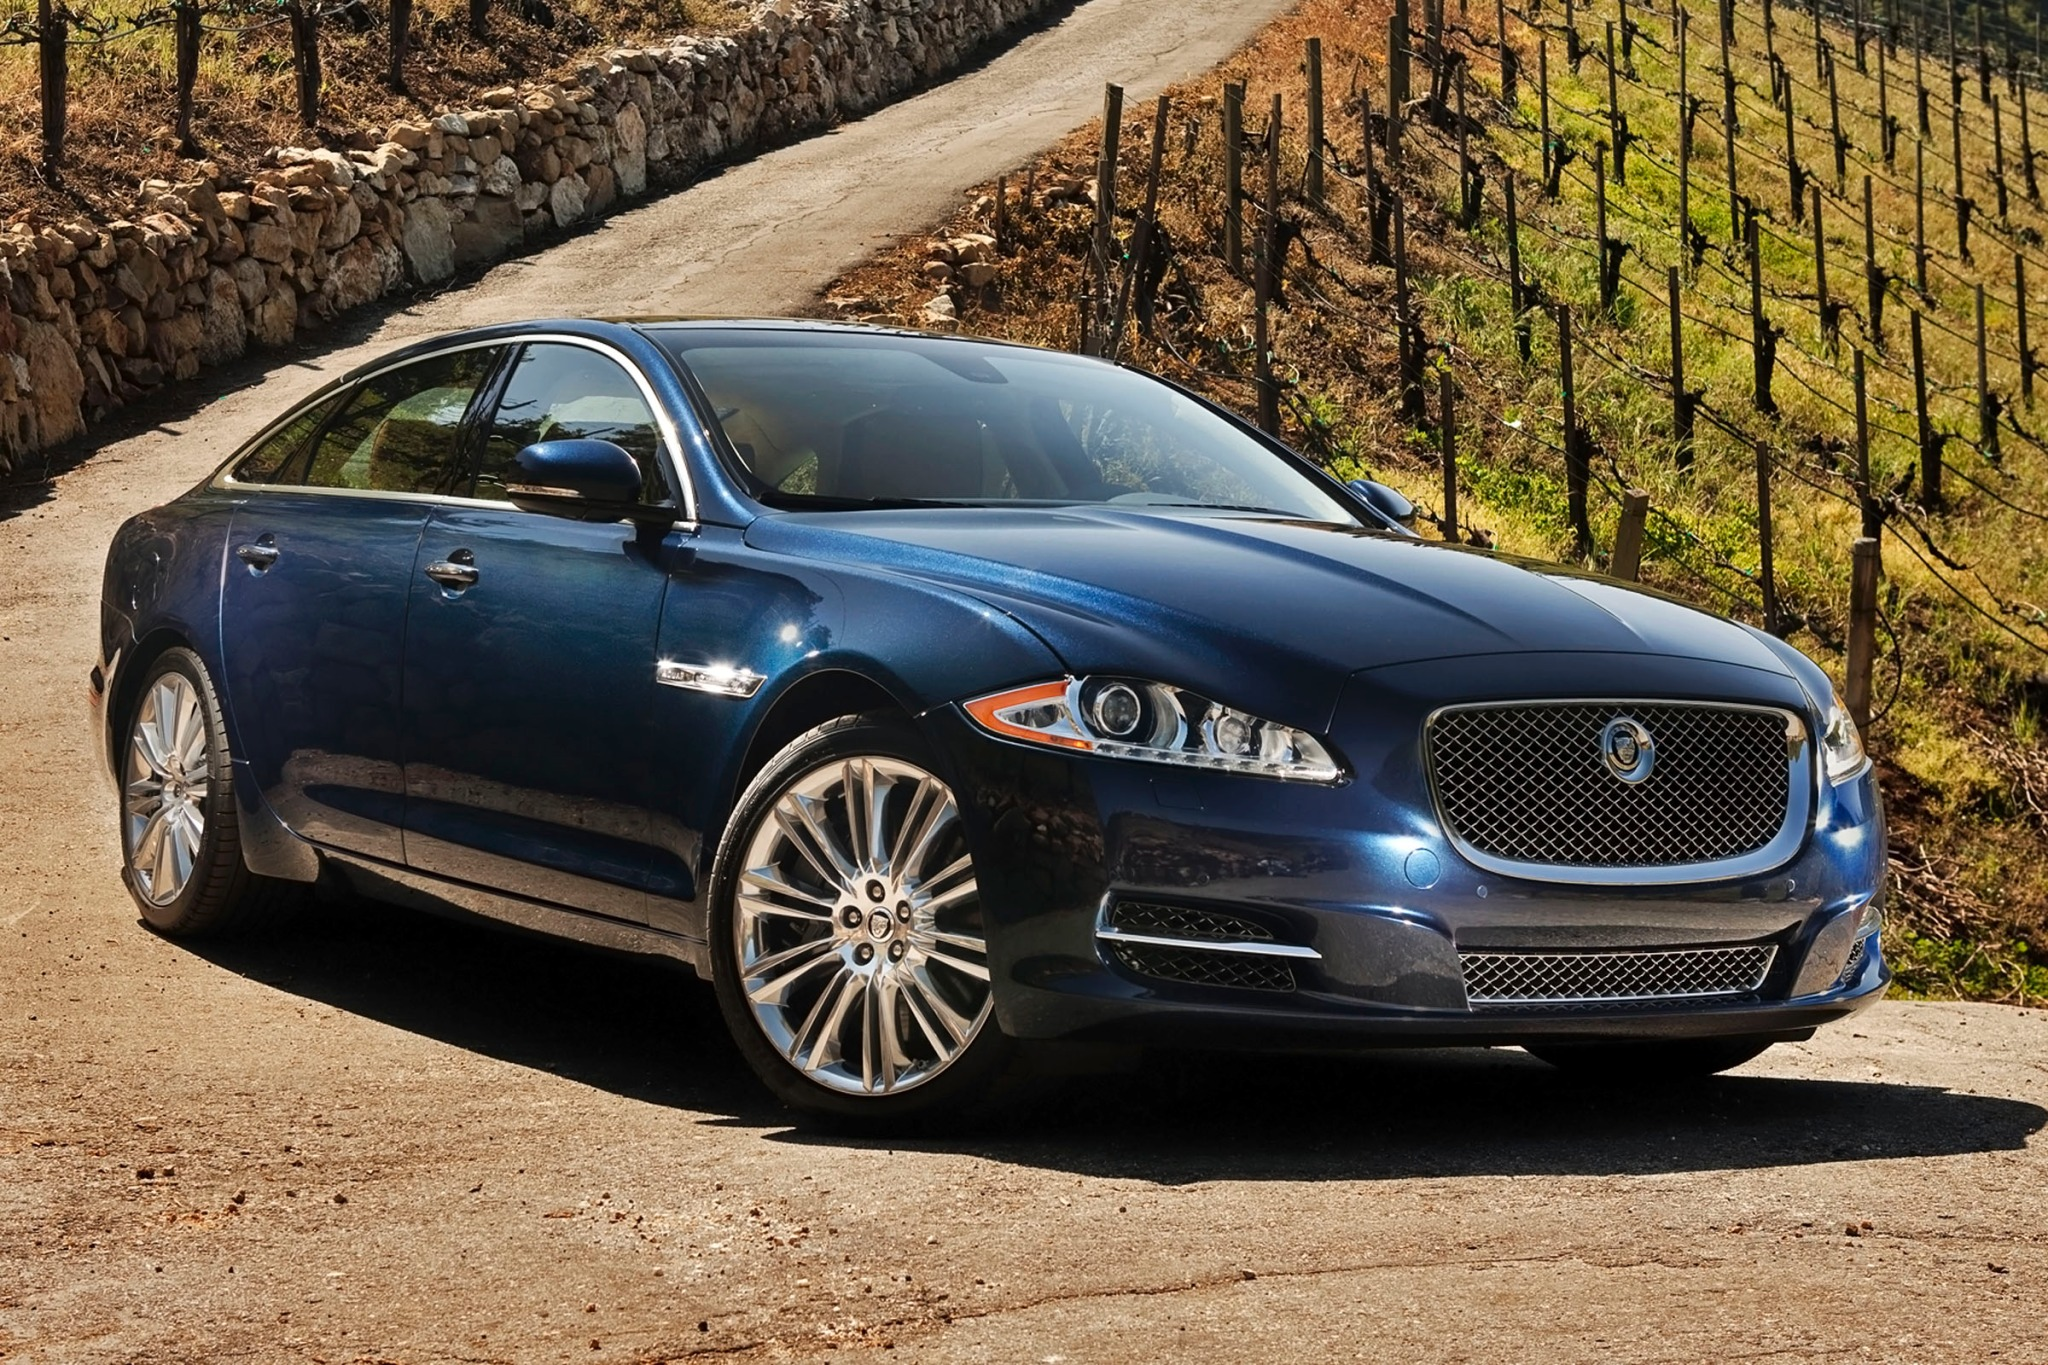 2013 Jaguar XJ Supercharg interior #2